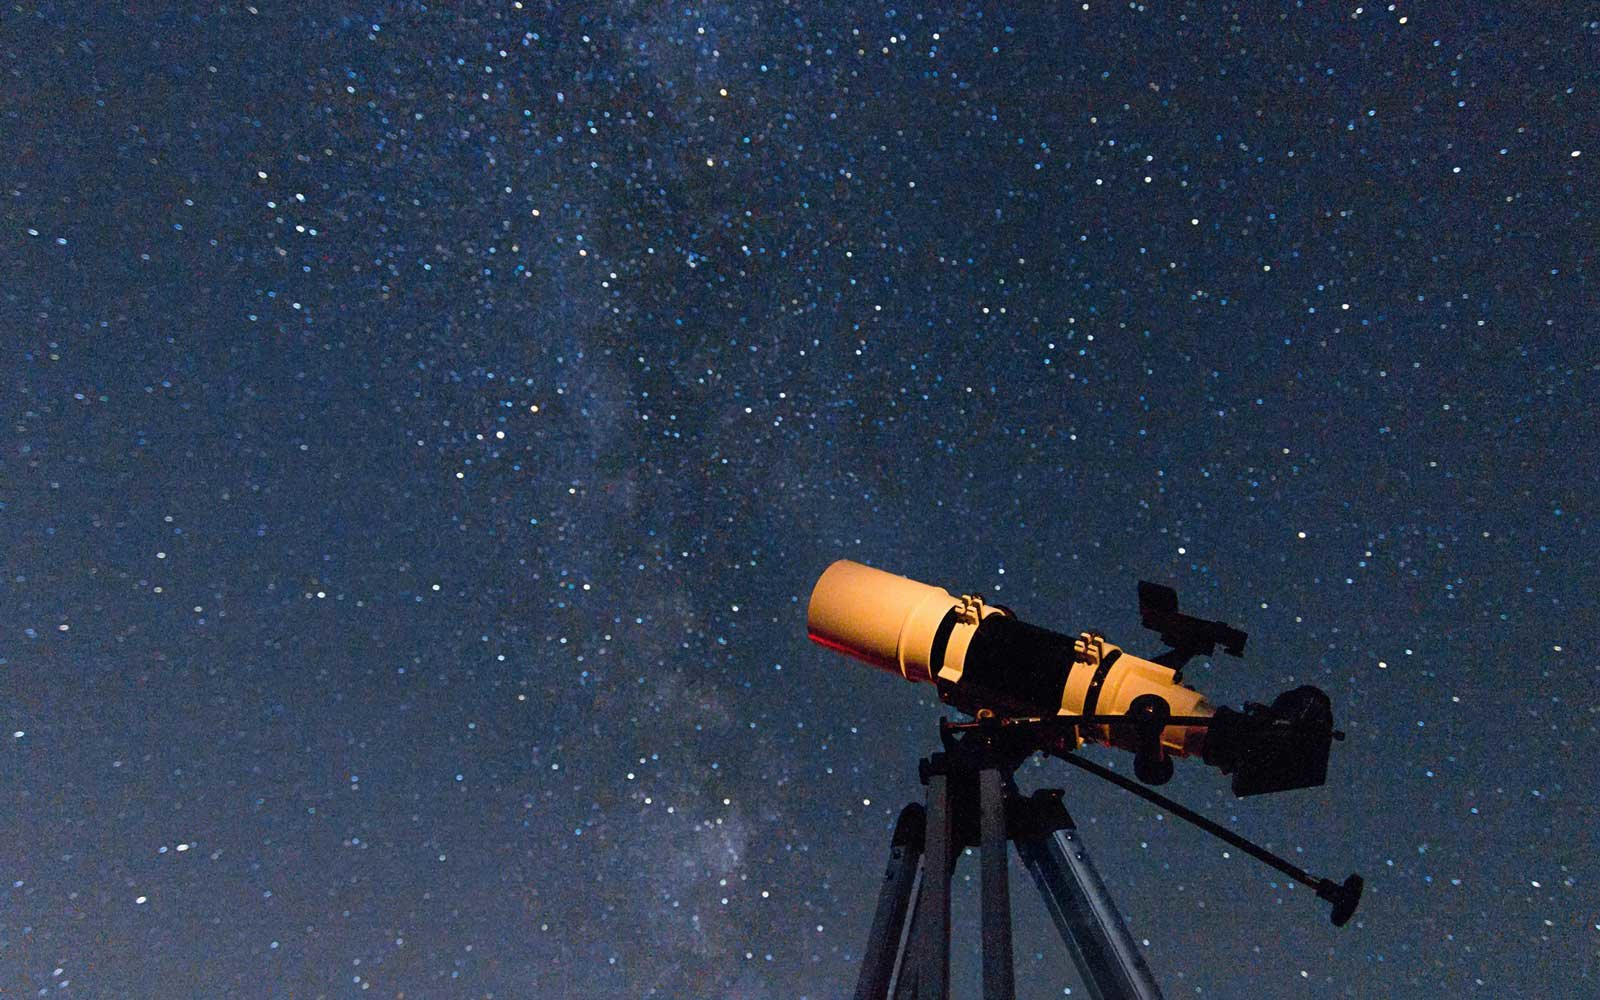 Telescope in real night sky.